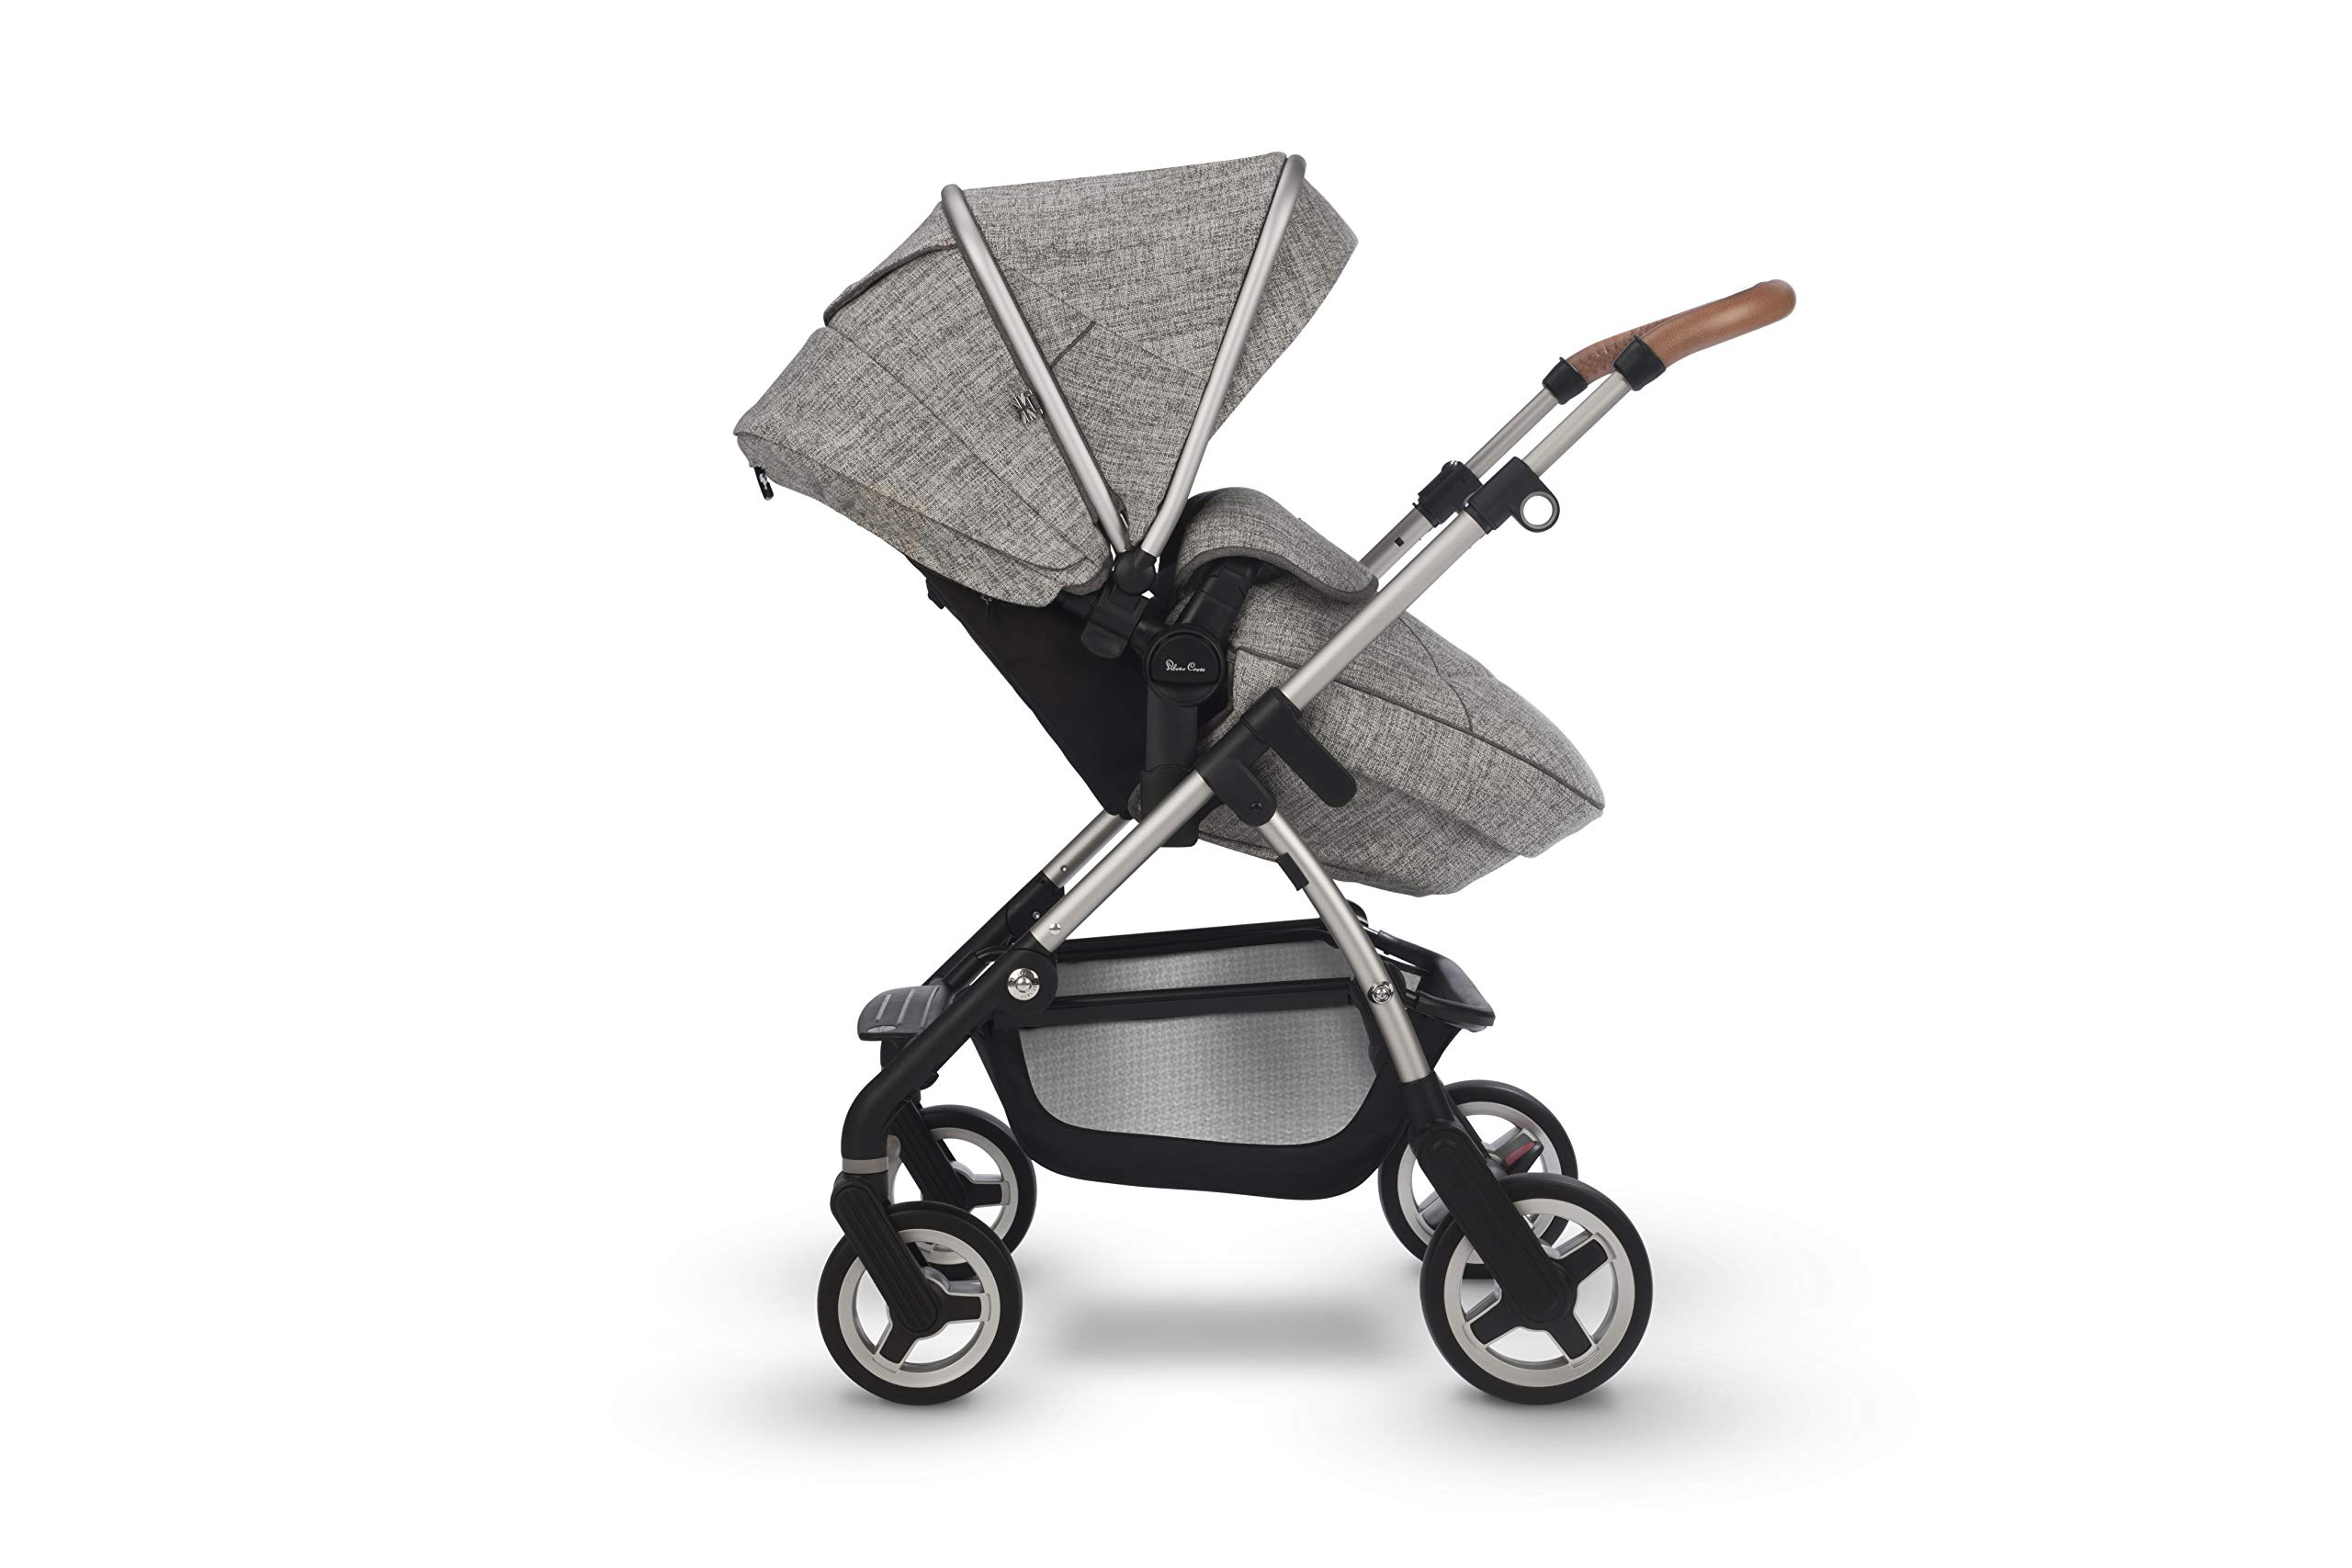 Silver Cross Wayfarer Camden Silver Cross Complete pram system that includes everything you need from birth to toddler Includes a lie-flat carrycot for your new born that is suitable for overnight sleeping Compact, lightweight and convenient, hardwearing and durable 4